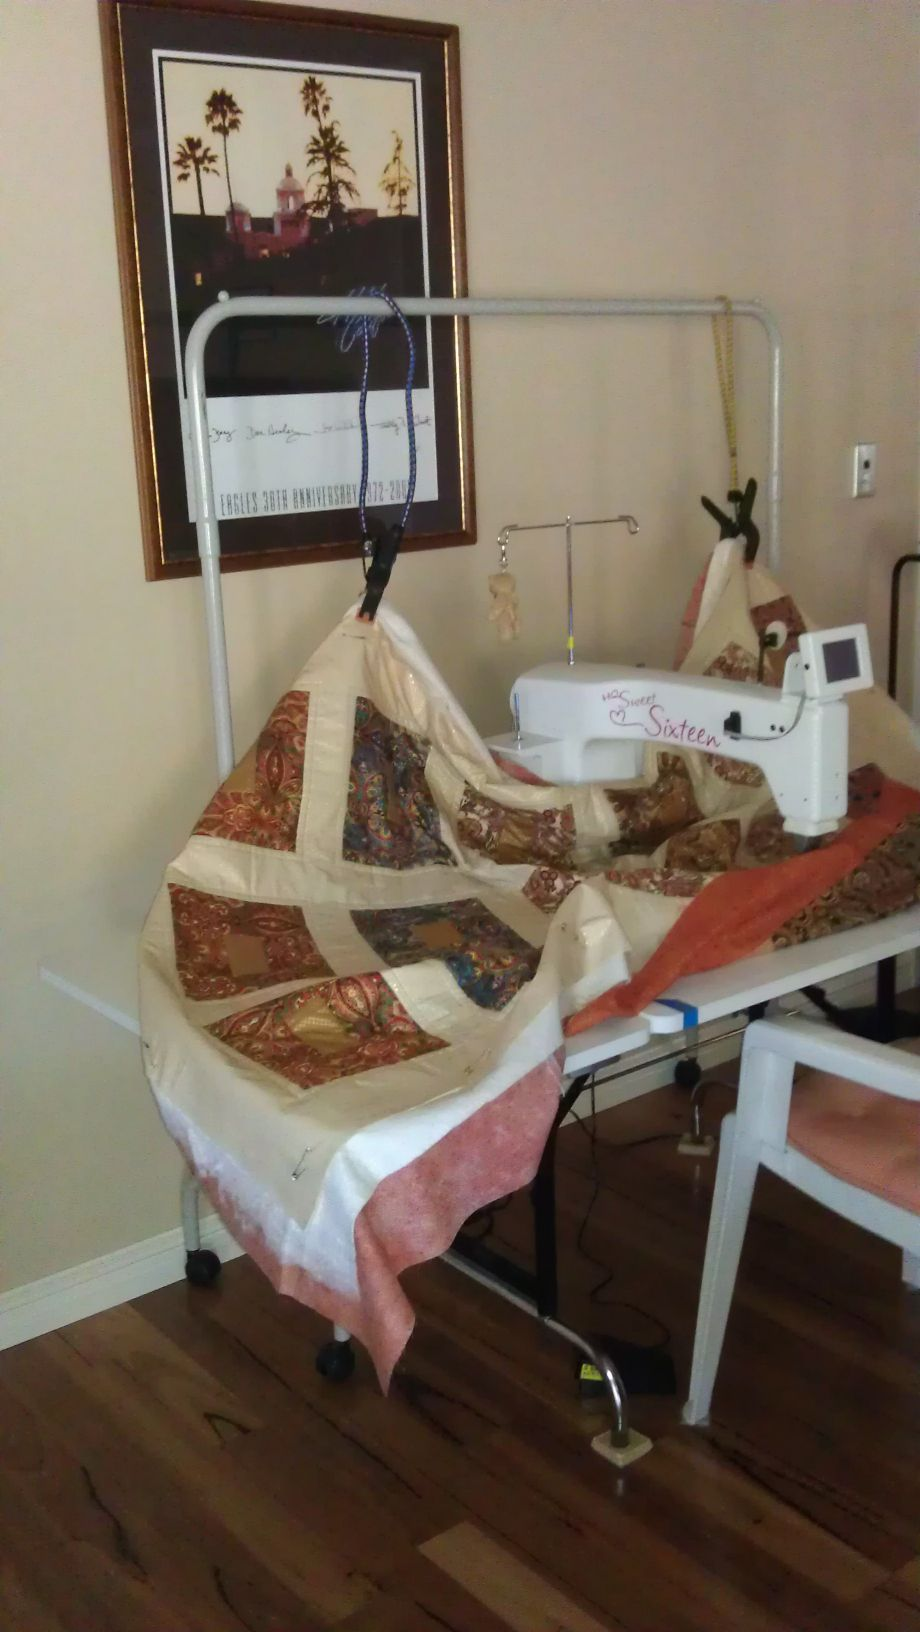 Improvise! Bungee cord system to hold up quilt and eliminate the ... : machine quilting a large quilt - Adamdwight.com